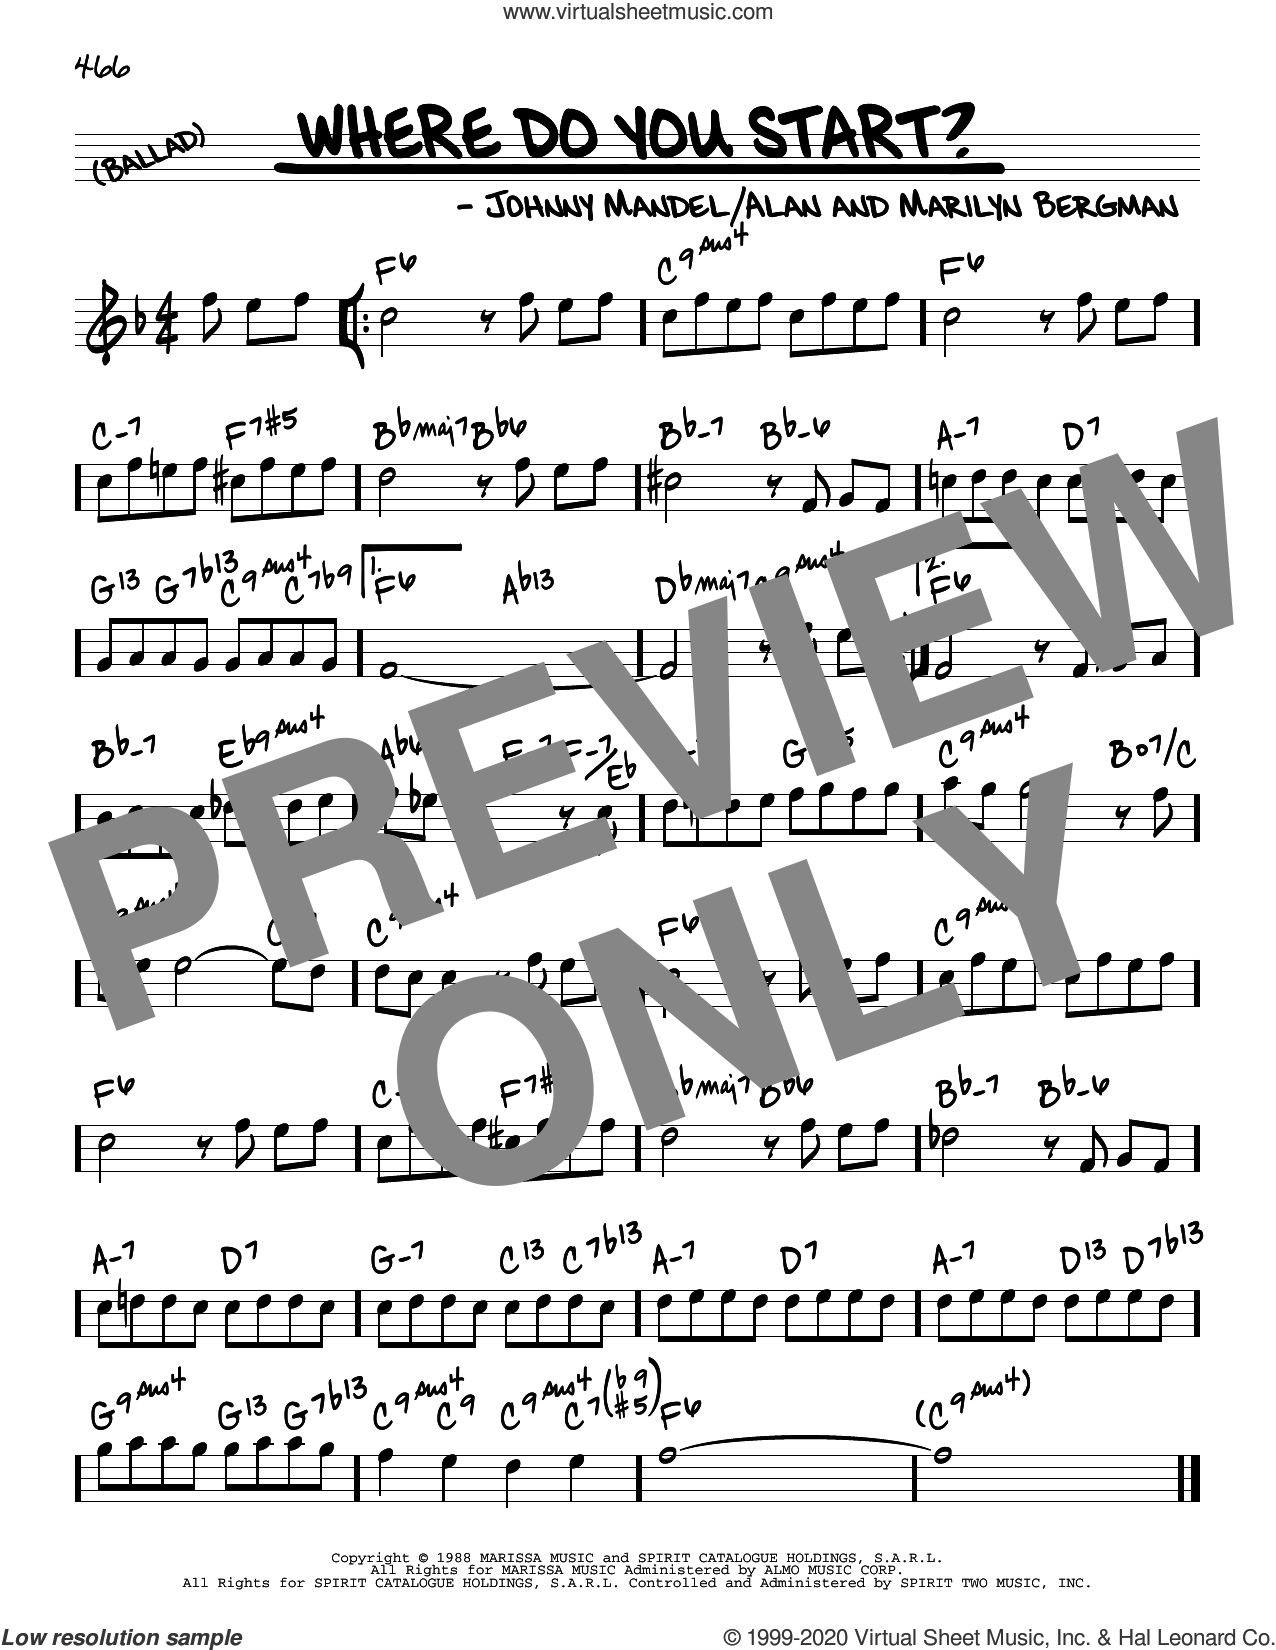 Where Do You Start? sheet music for voice and other instruments (real book) by Marilyn Bergman, Alan Bergman and Johnny Mandel, intermediate skill level